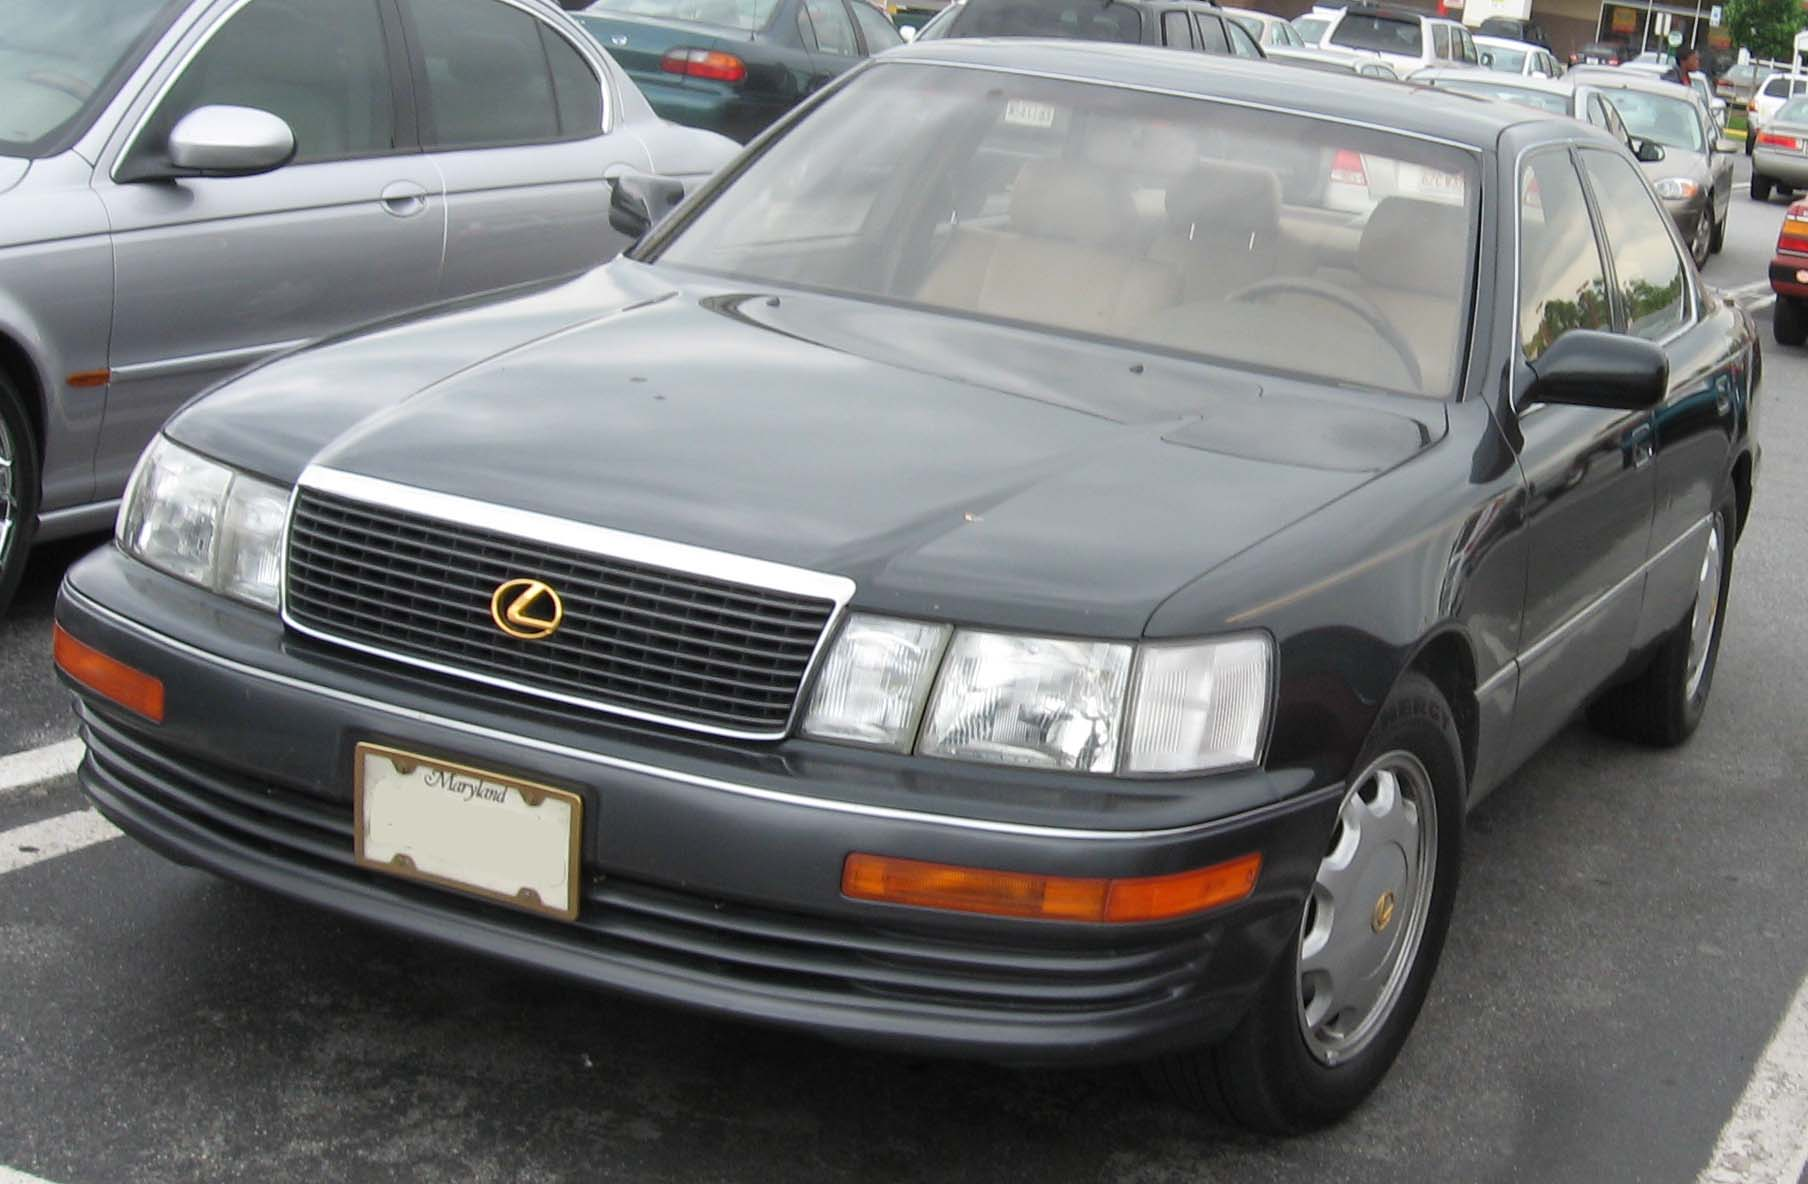 File:93-94 Lexus LS400.jpg - Wikimedia Commons